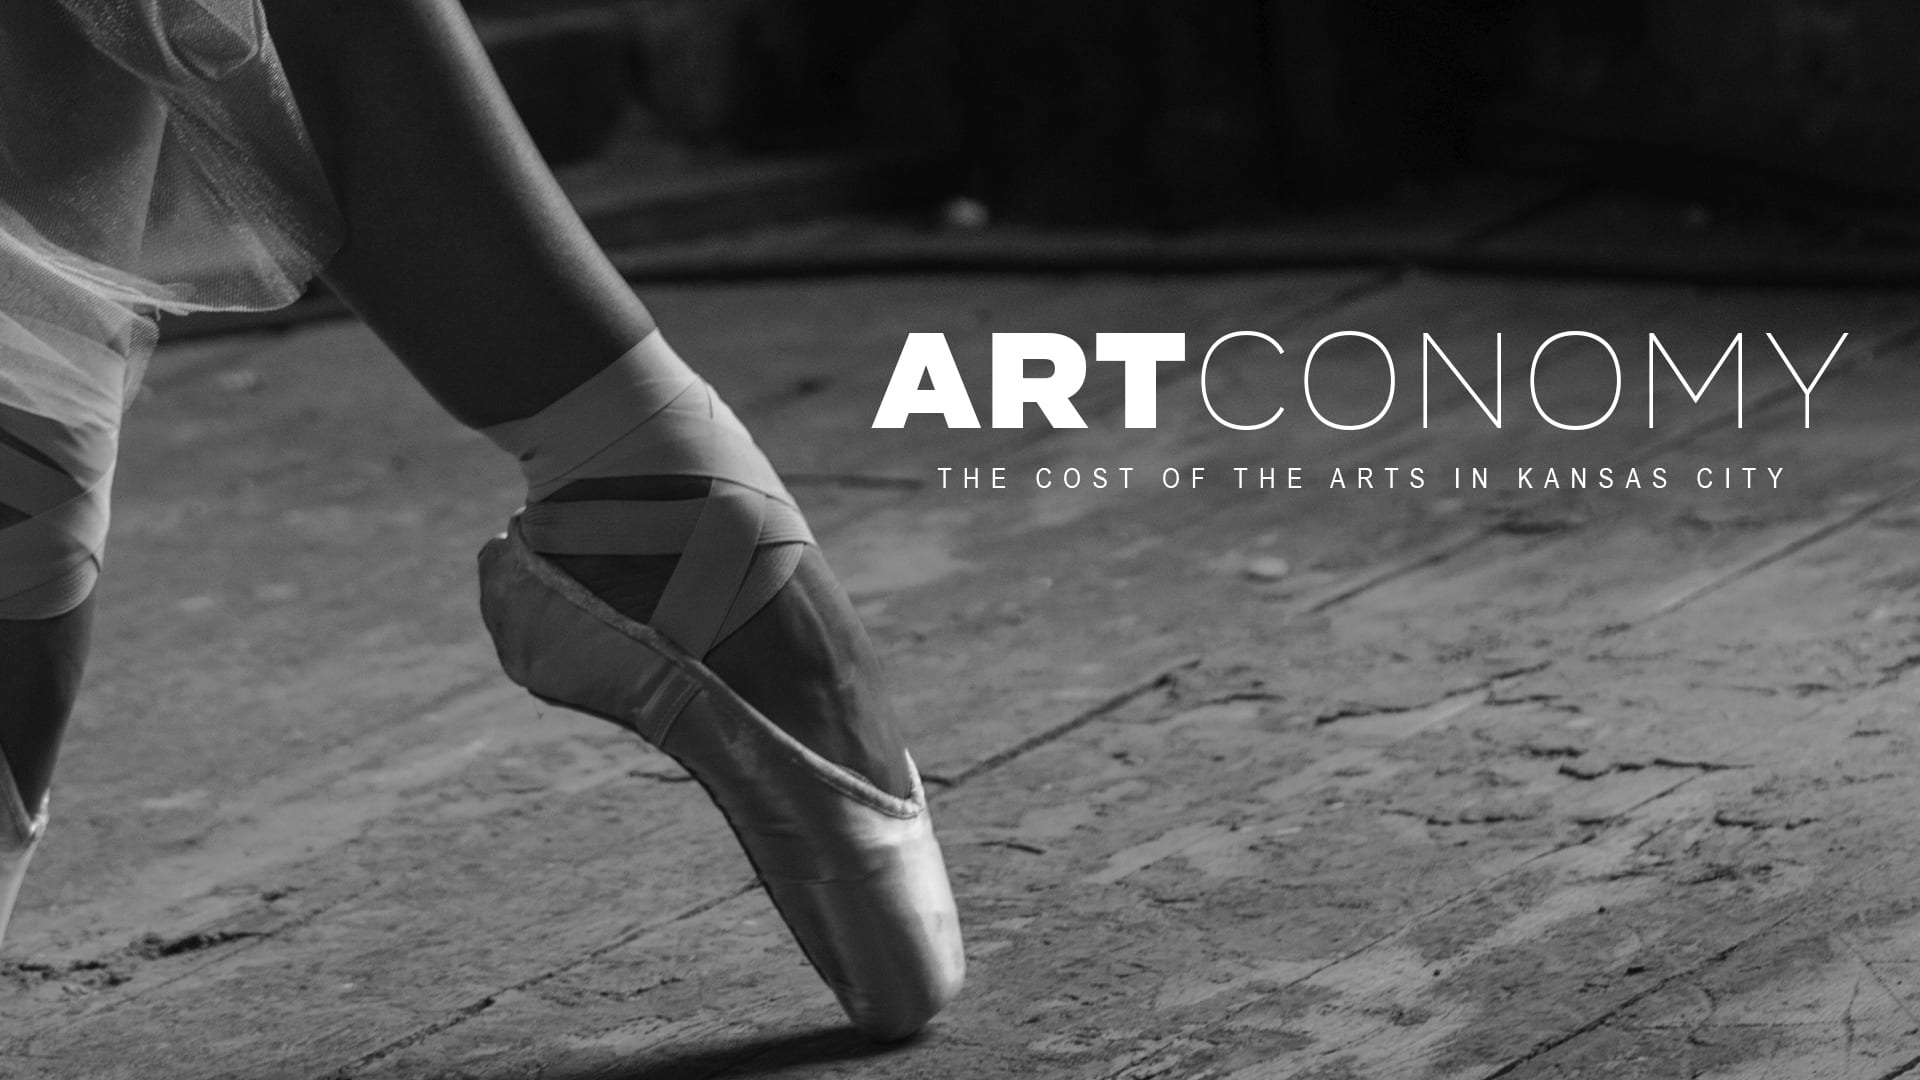 A ballerina's foot and the words Artconomy